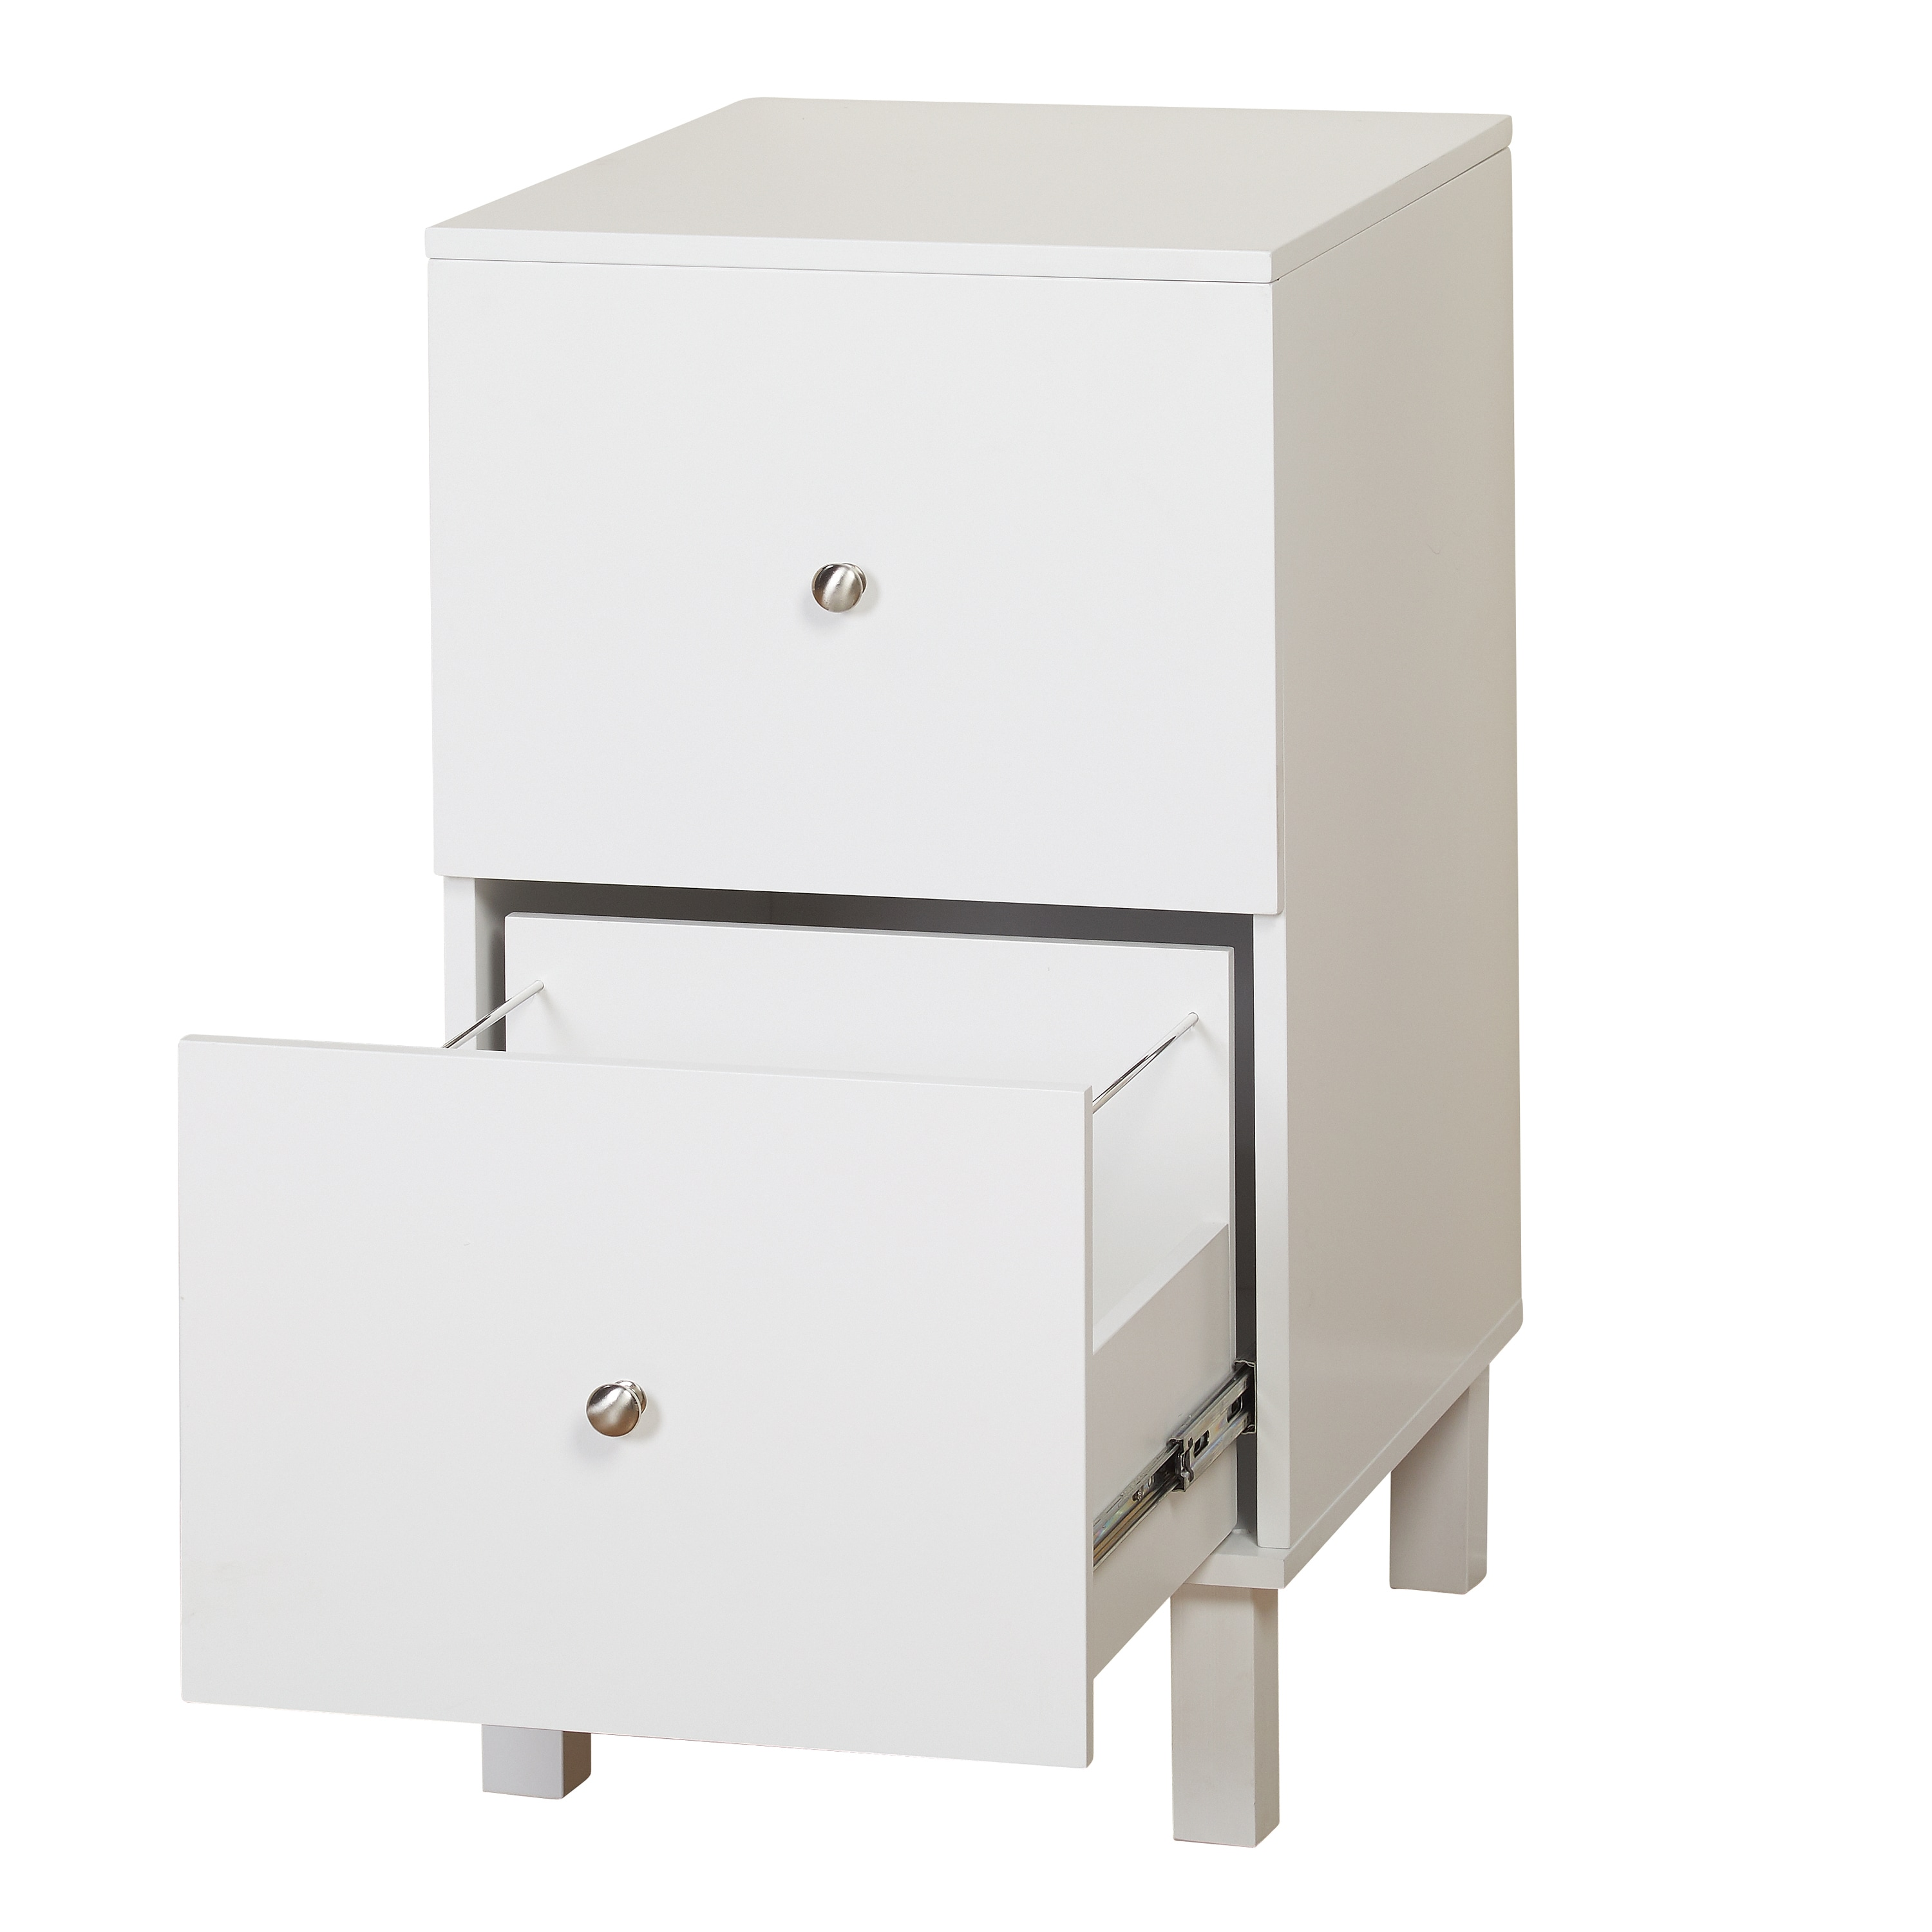 hon side flat parts cabinet lock wood mini folder drawer metal hanging pack regarding files suspension filing divider sample oxford dividers file open furniture rails officemax bars collection dimensions shine insert staples storage lateral ideas s steel x rail replacement cardboard five slide online